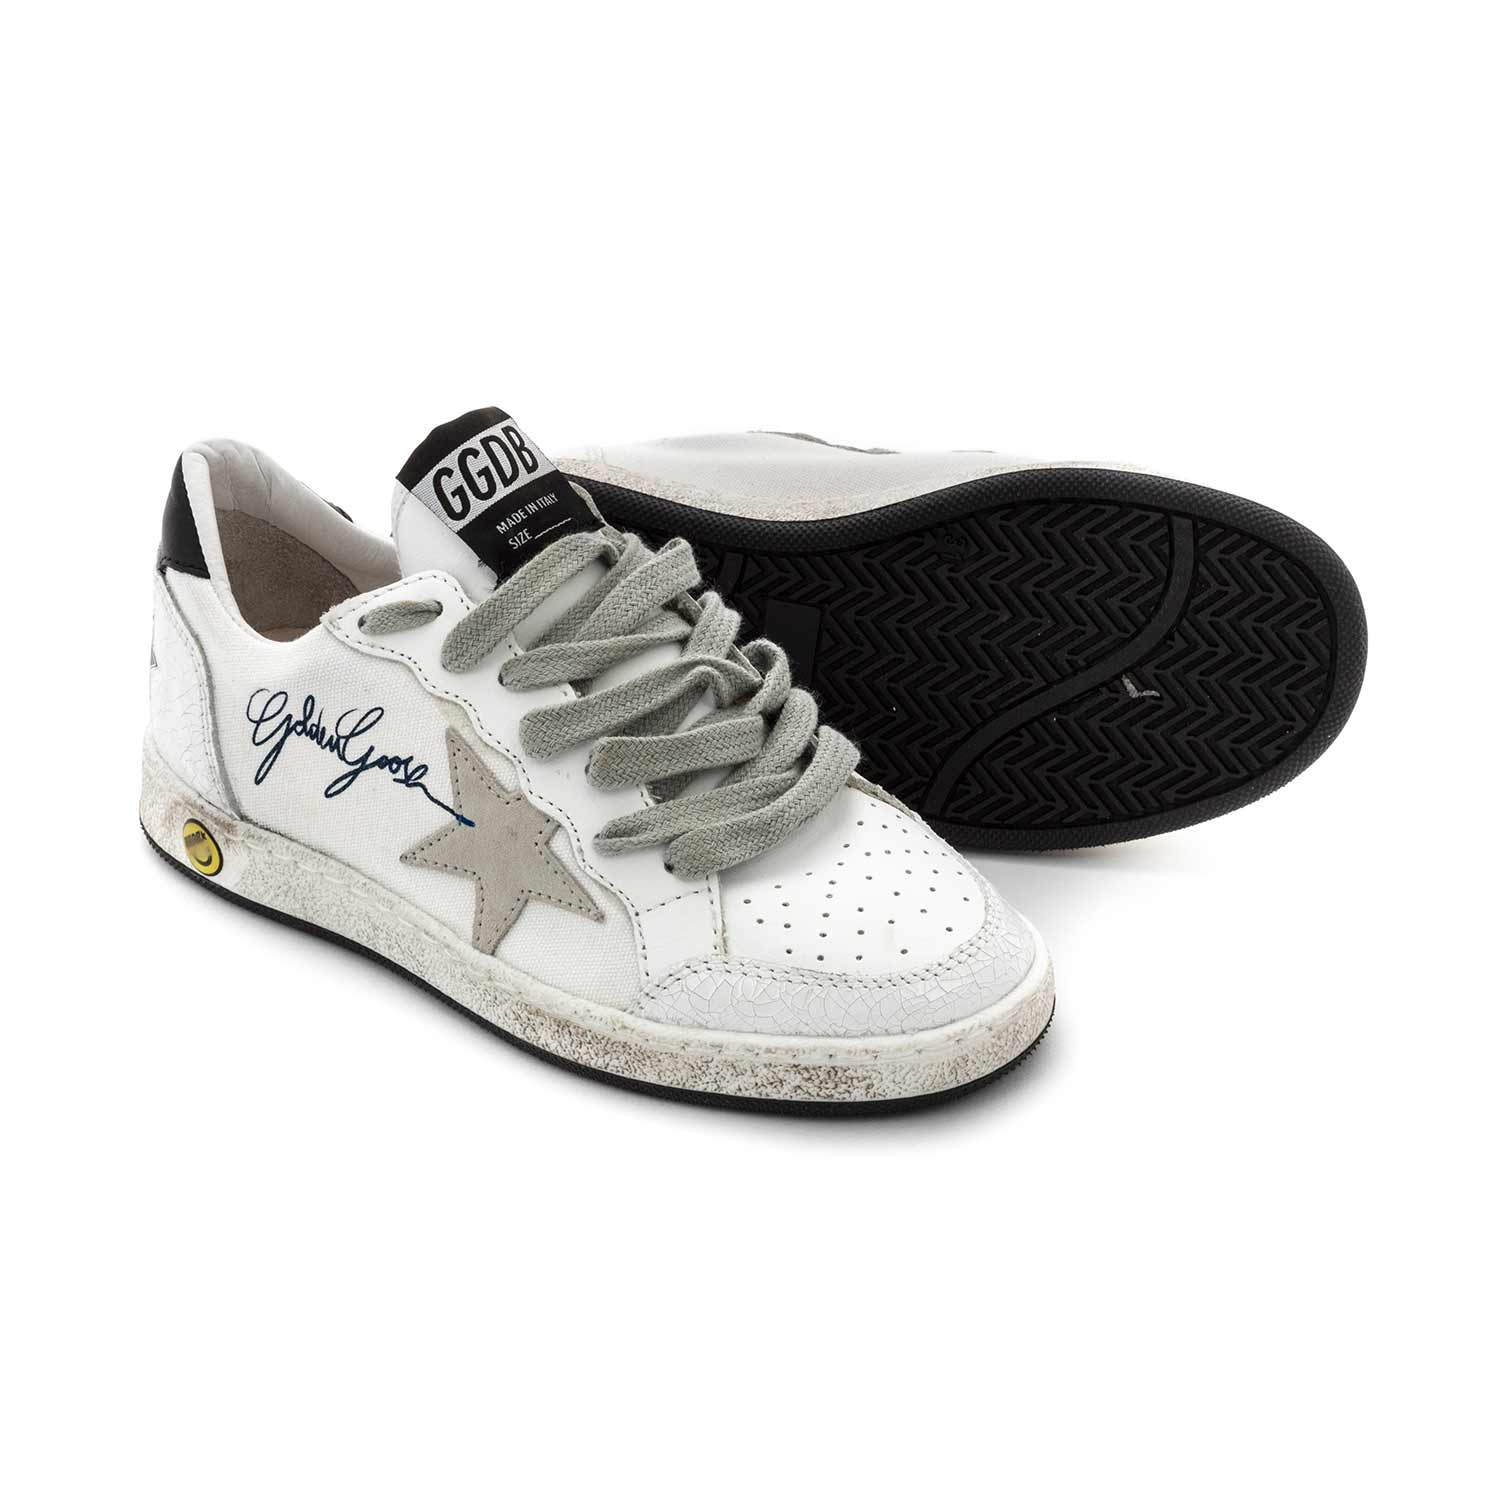 Golden Goose - Ggdb Sneakers For Boys